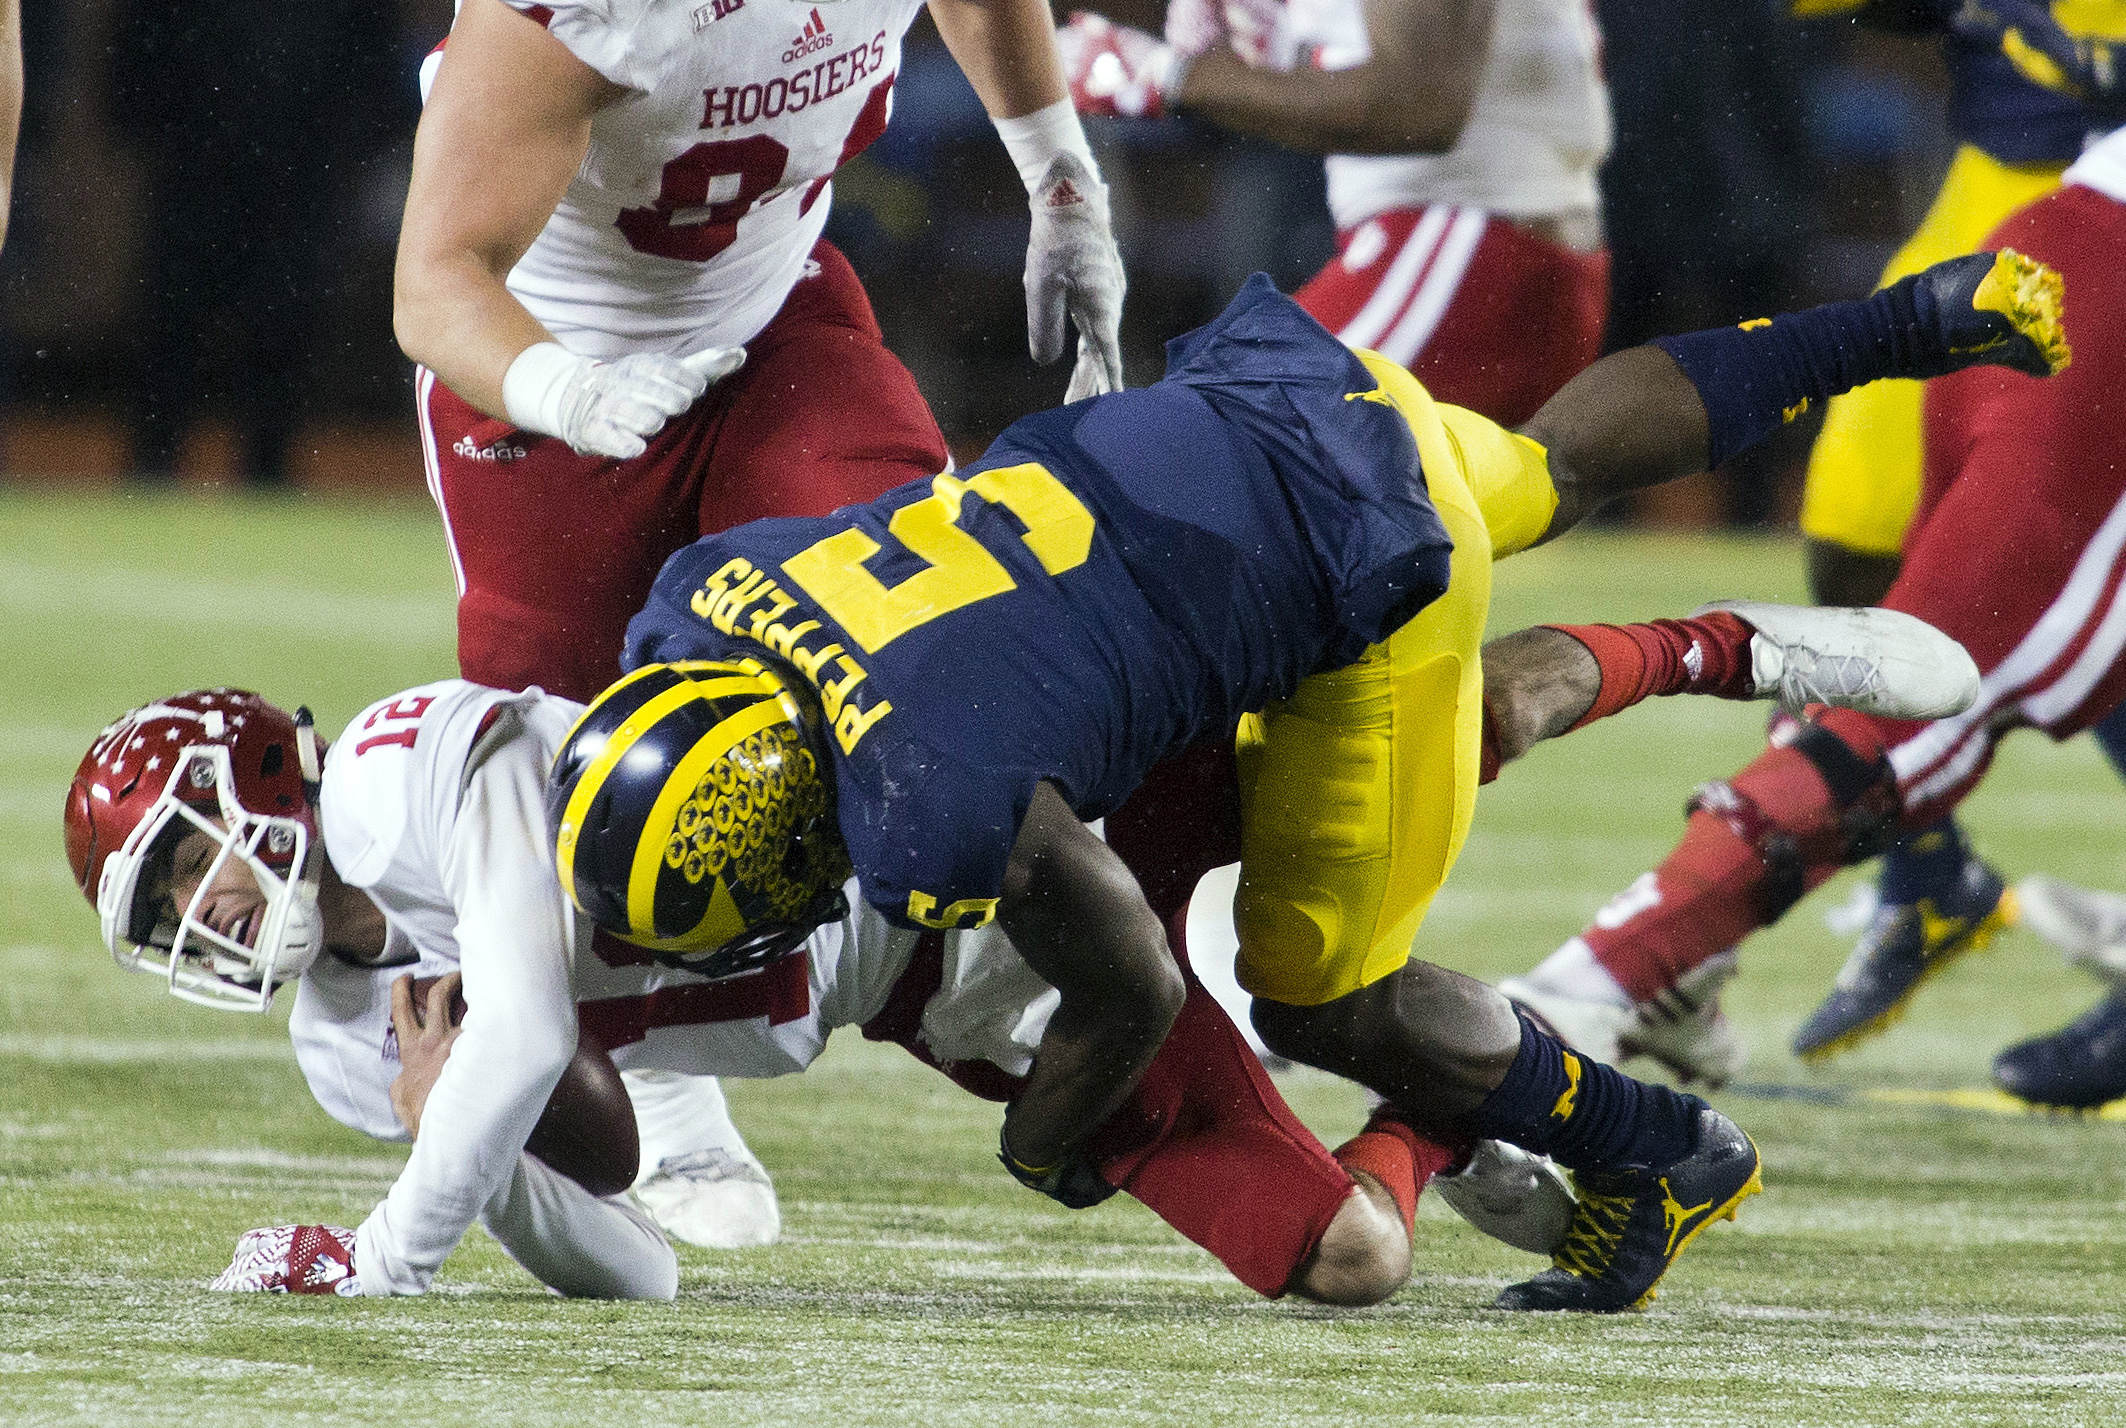 Indiana quarterback Zander Diamont (12) is sacked by Michigan linebacker Jabrill Peppers (5) in the fourth quarter of an NCAA college football game in Ann Arbor, Mich., Saturday, Nov. 19, 2016. Michigan won 20-10. (AP Photo/Tony Ding)